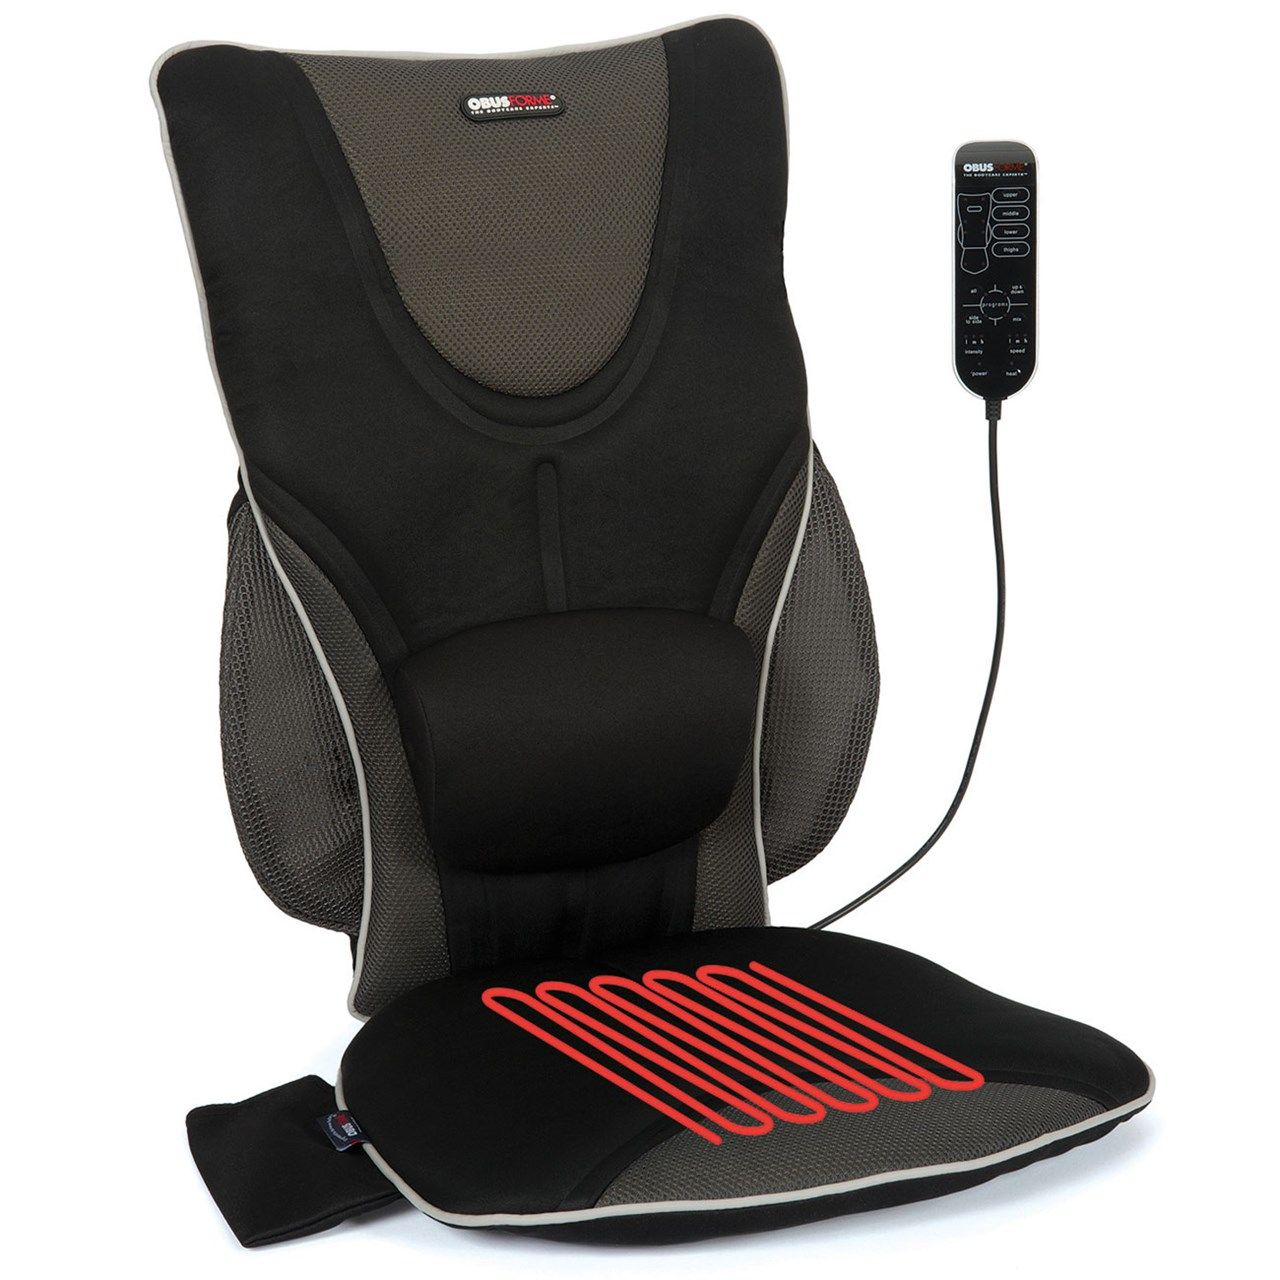 Back support drivers seat cushion with lumbar pad heat